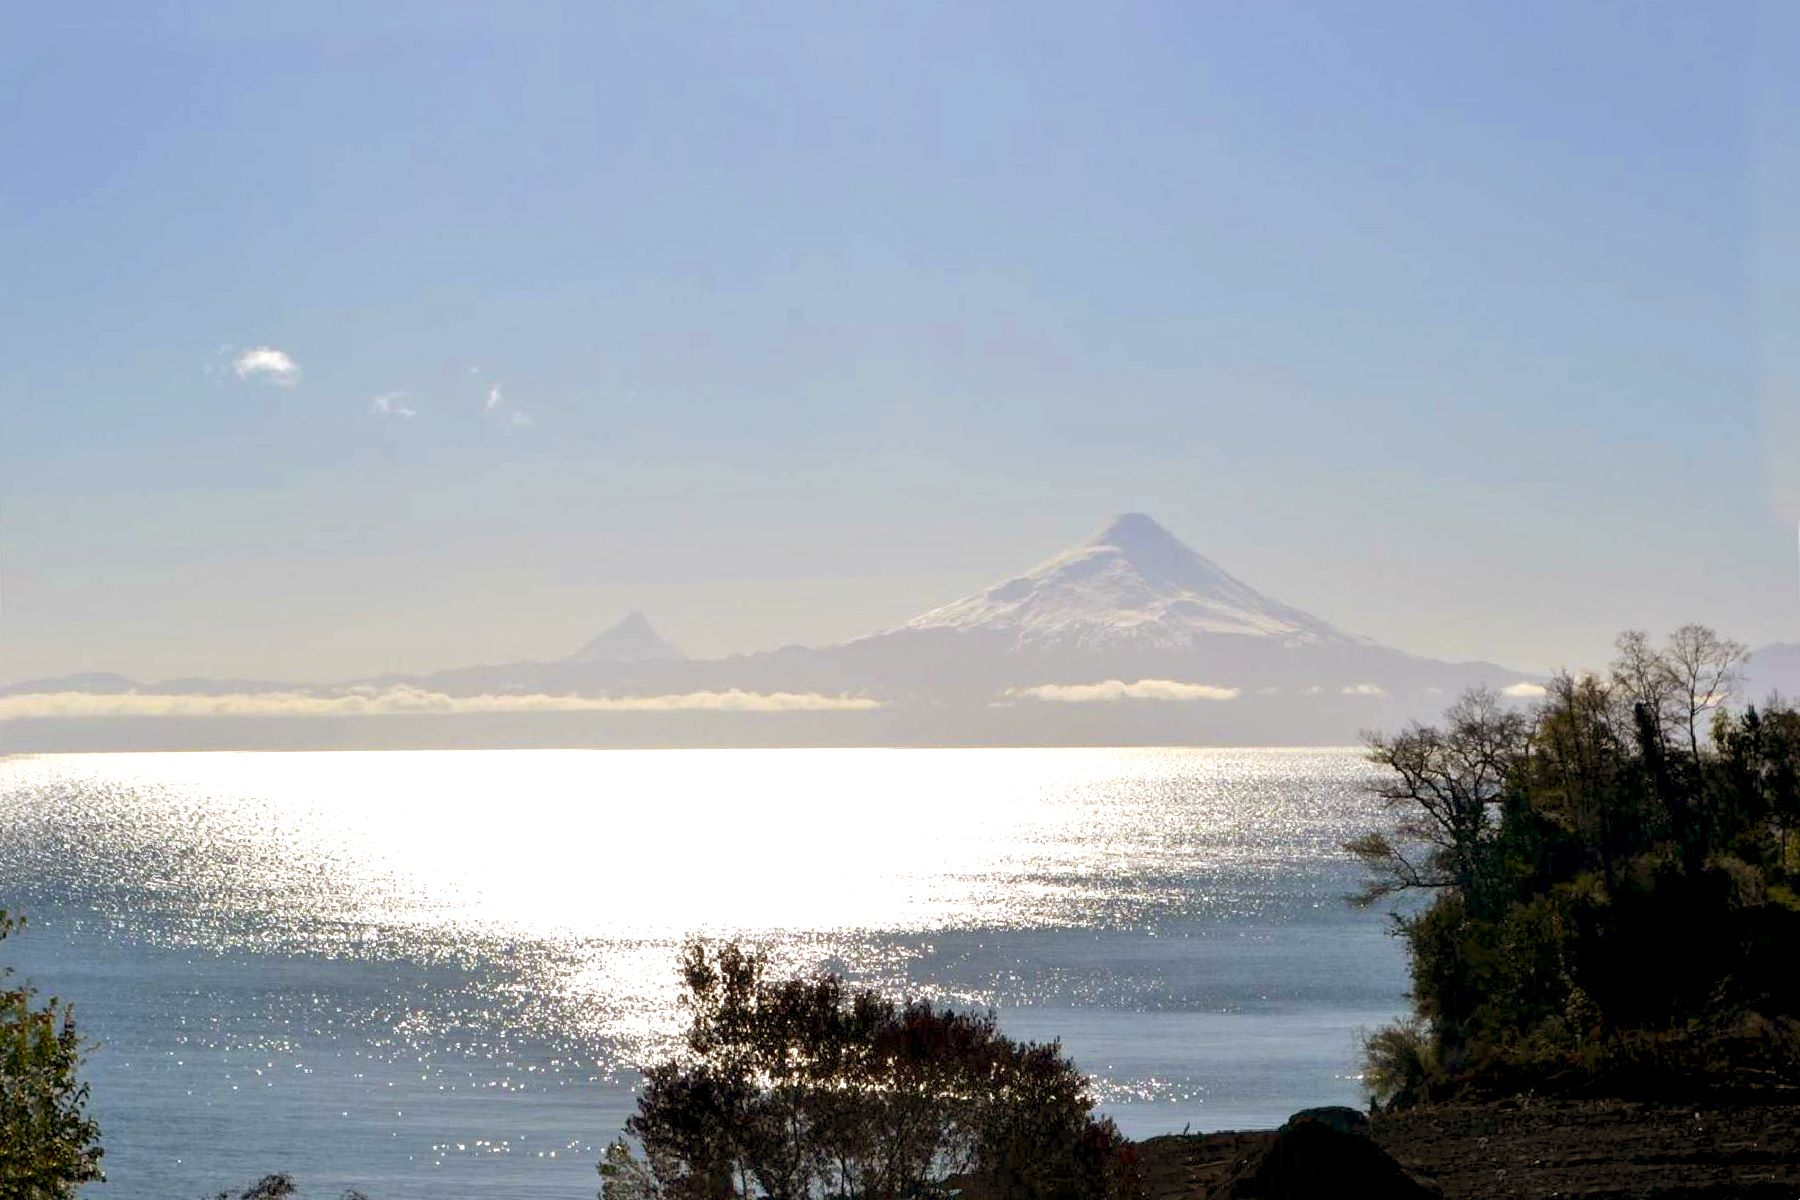 Land for Sale at Exclusive and Unique Lot - Lakeshore of Llanquihue, Totoral Bay Puerto Montt, Los Lagos Chile